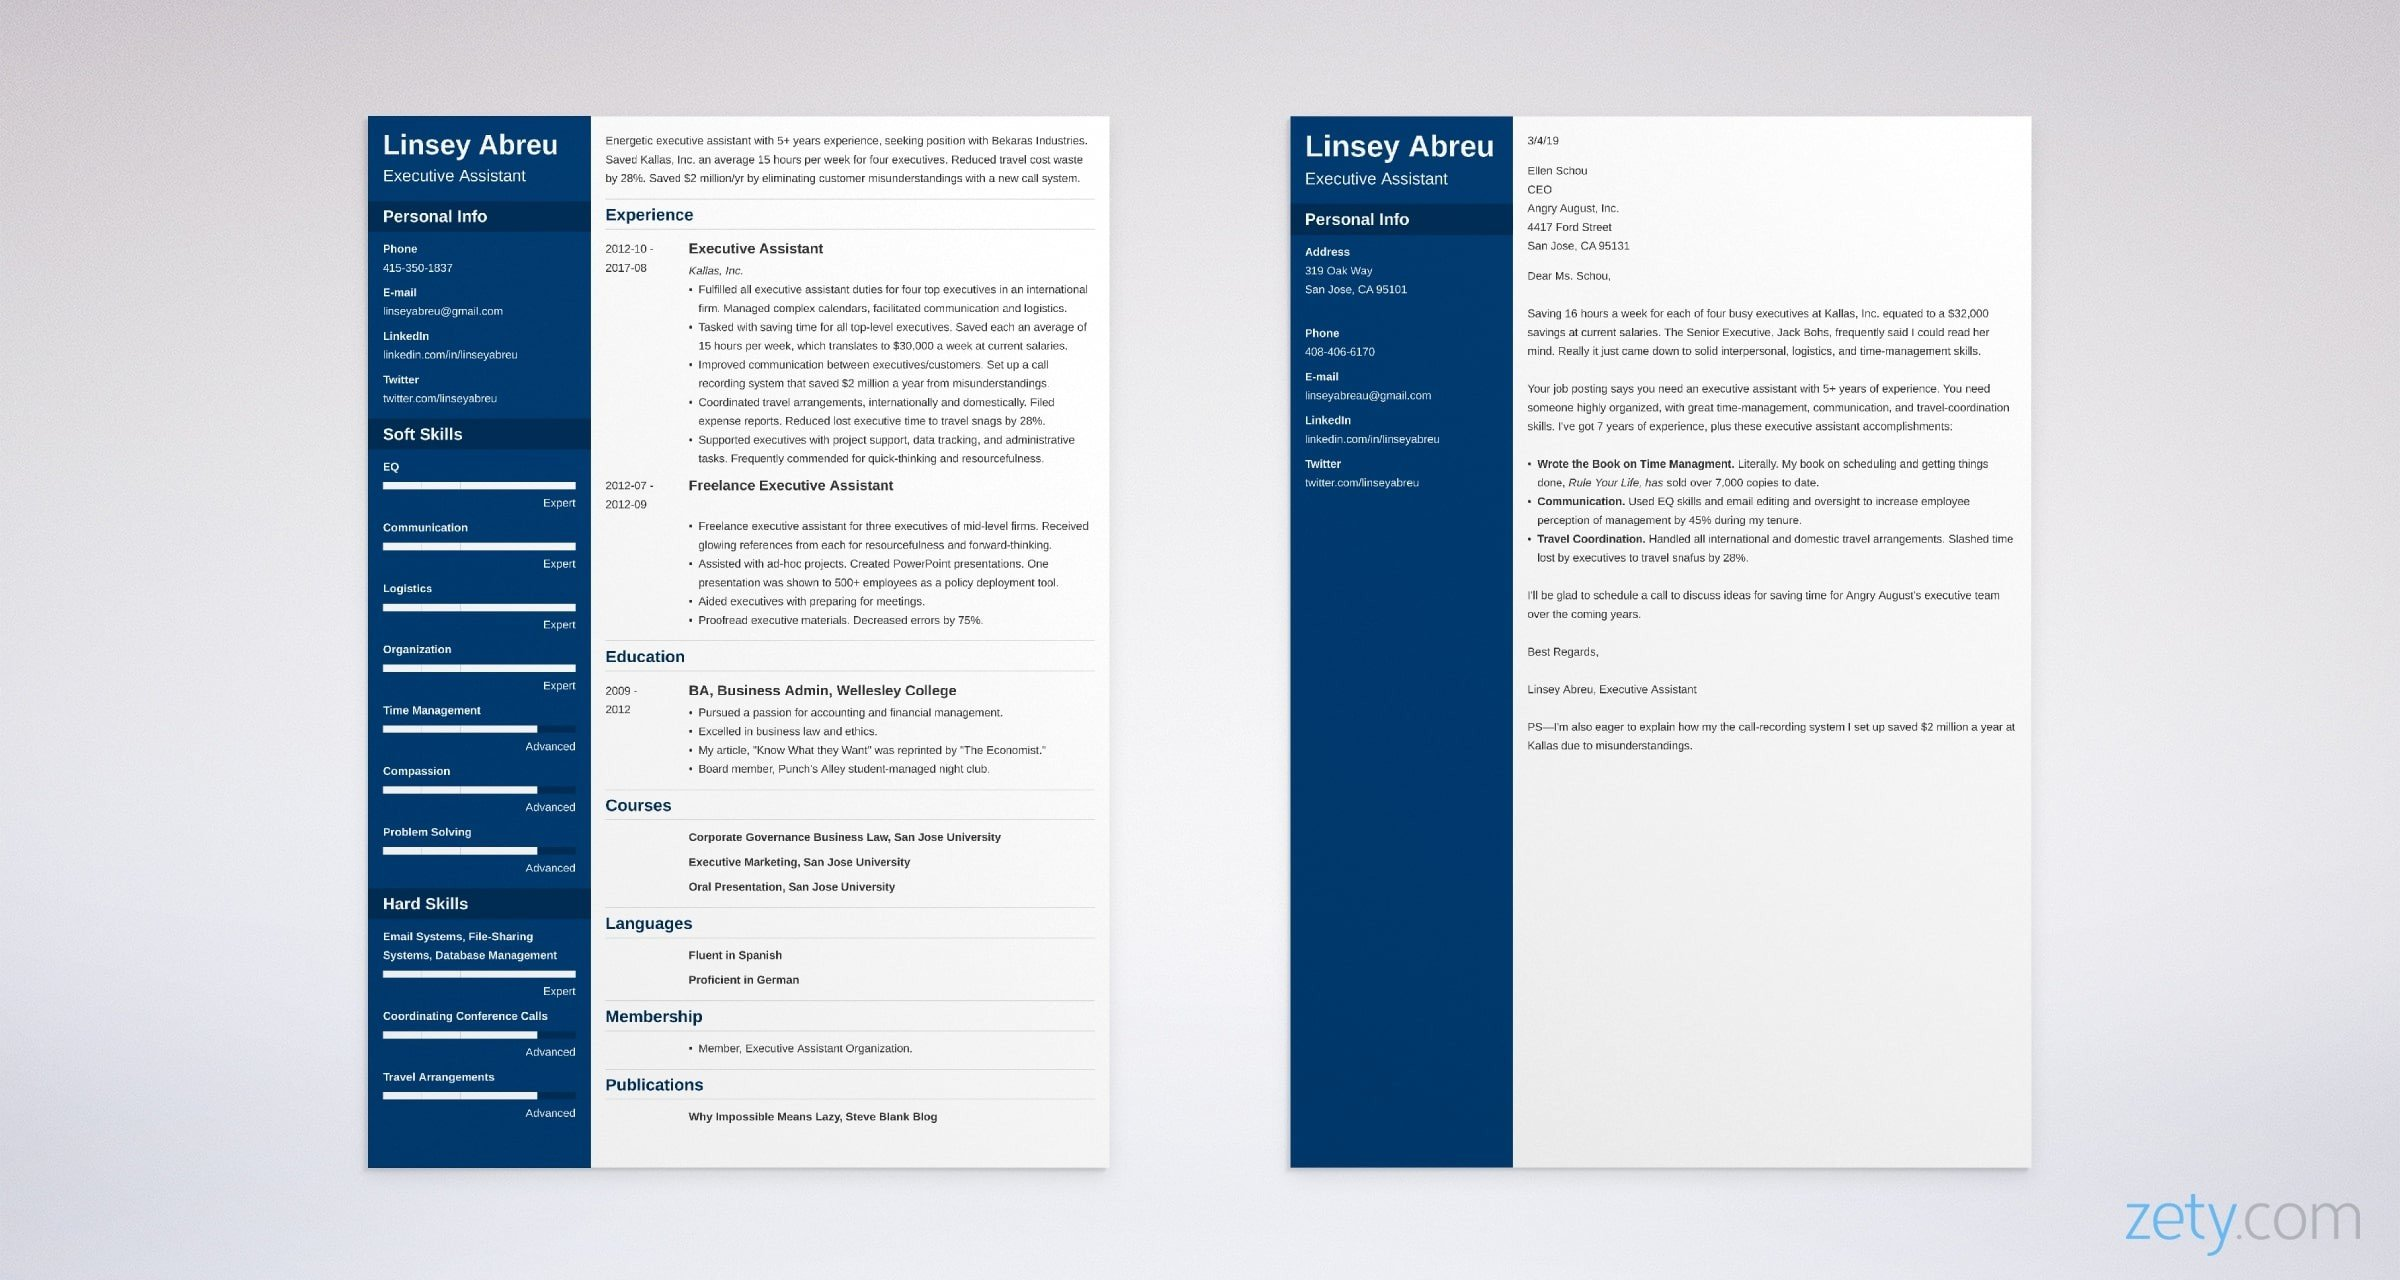 Executive Assistant Cover Letter: Sample & Full Guide [10+ Examples]